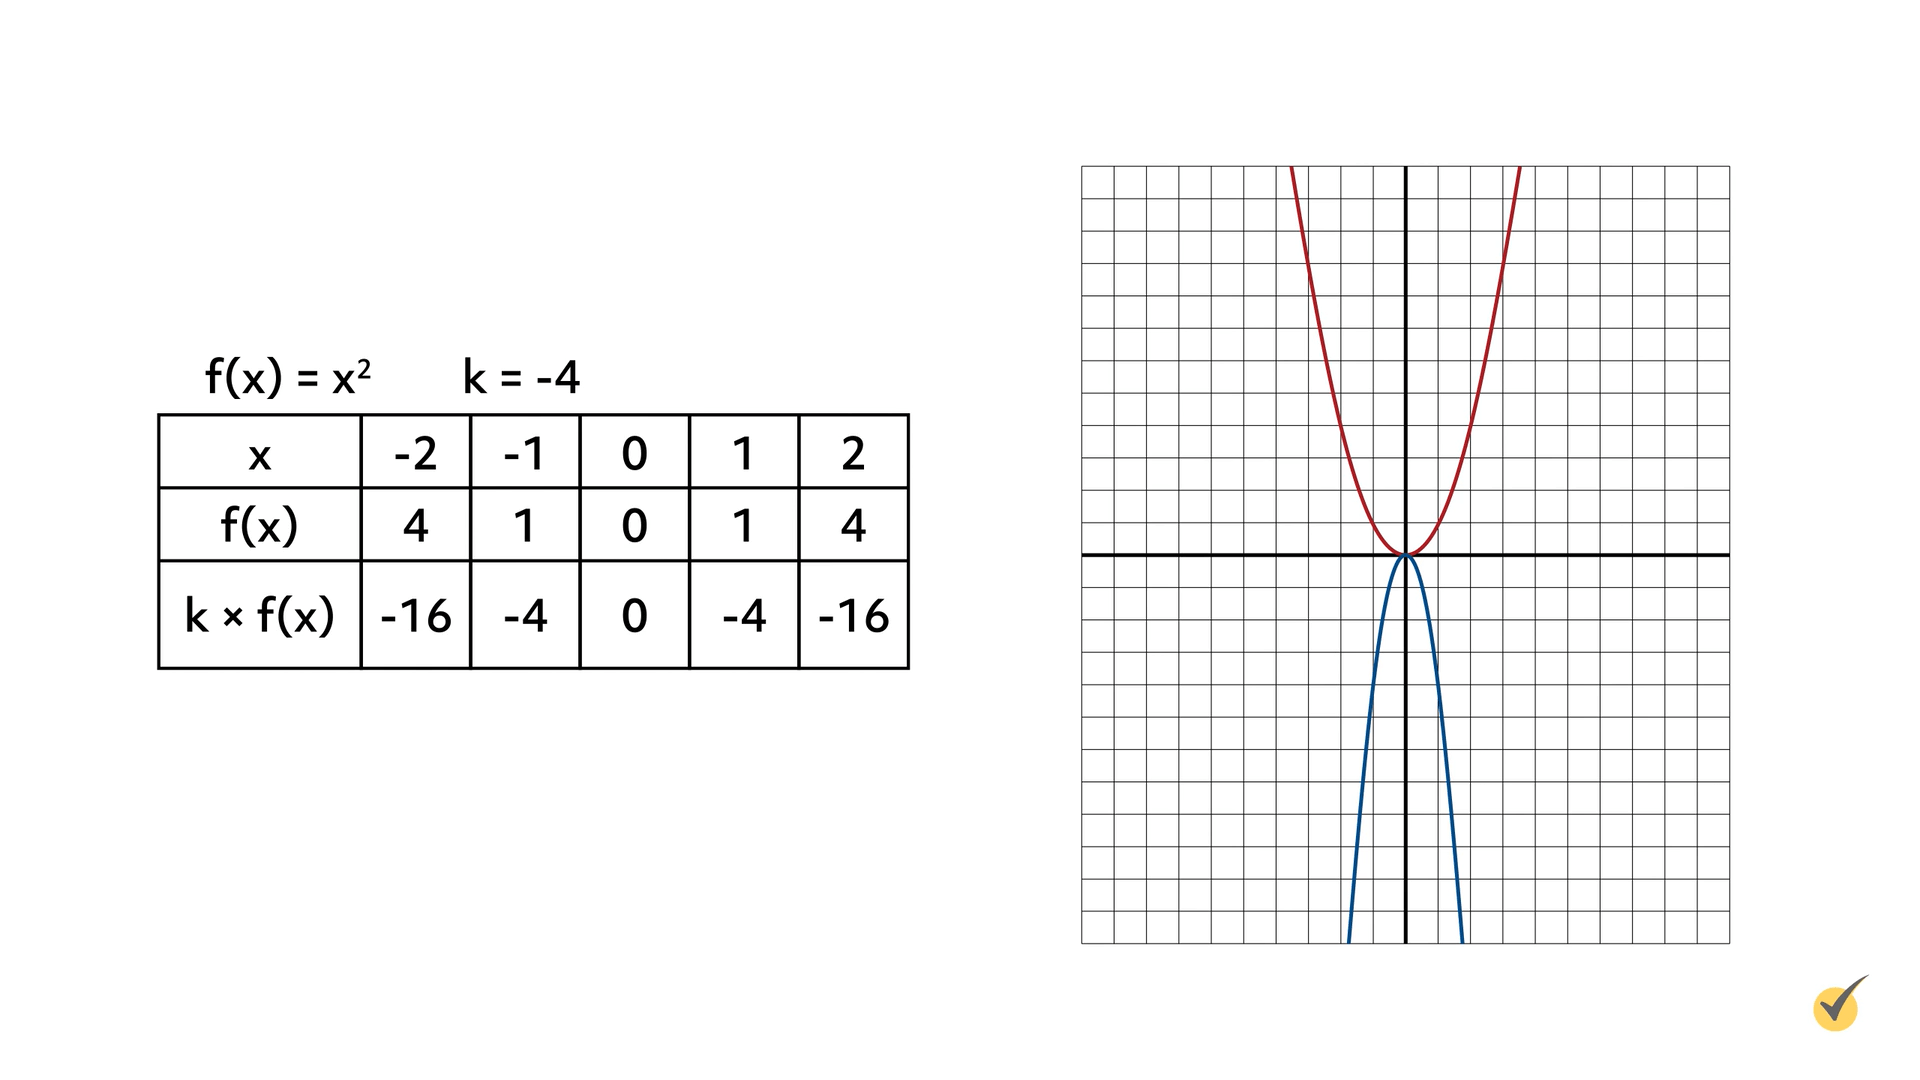 Image of f(x)=X^2 and k+-4 plotted on a graph.